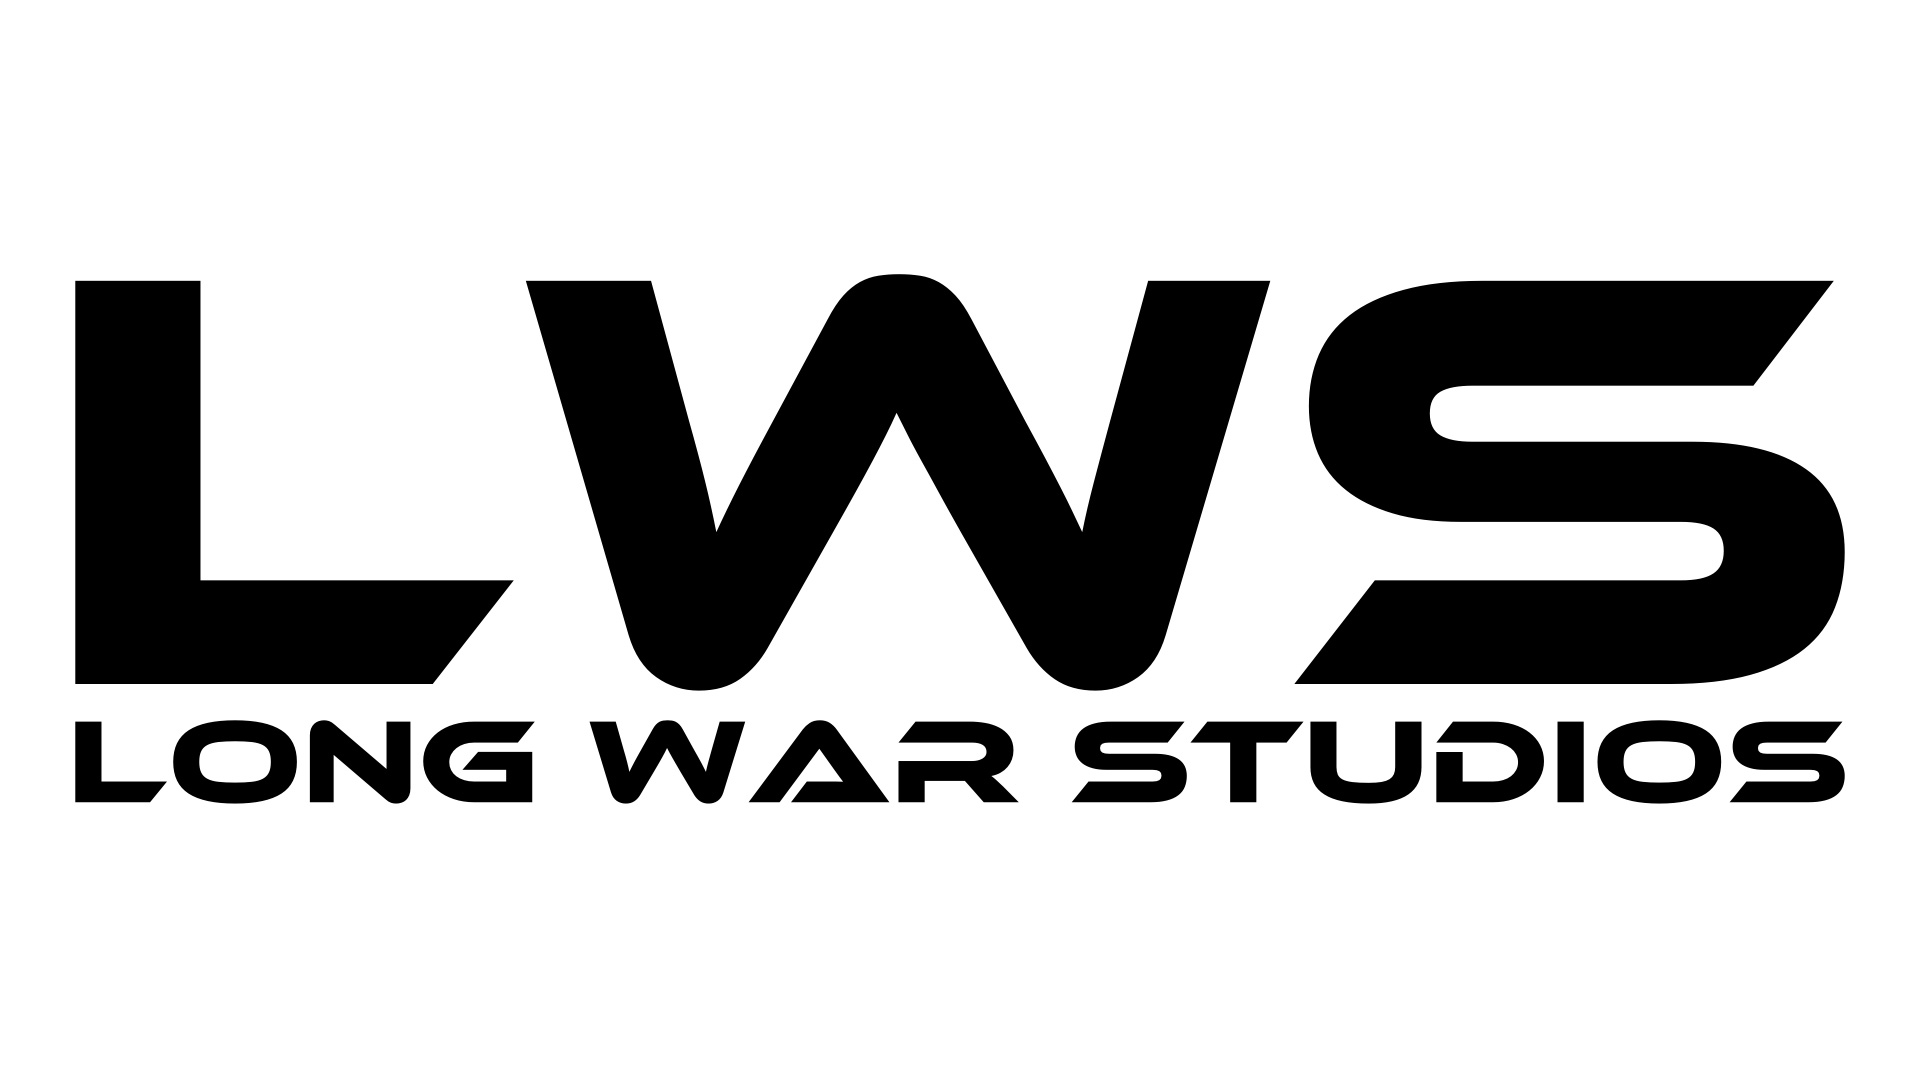 PT - Long War Studios Preparing XCOM 2 Content for Launc